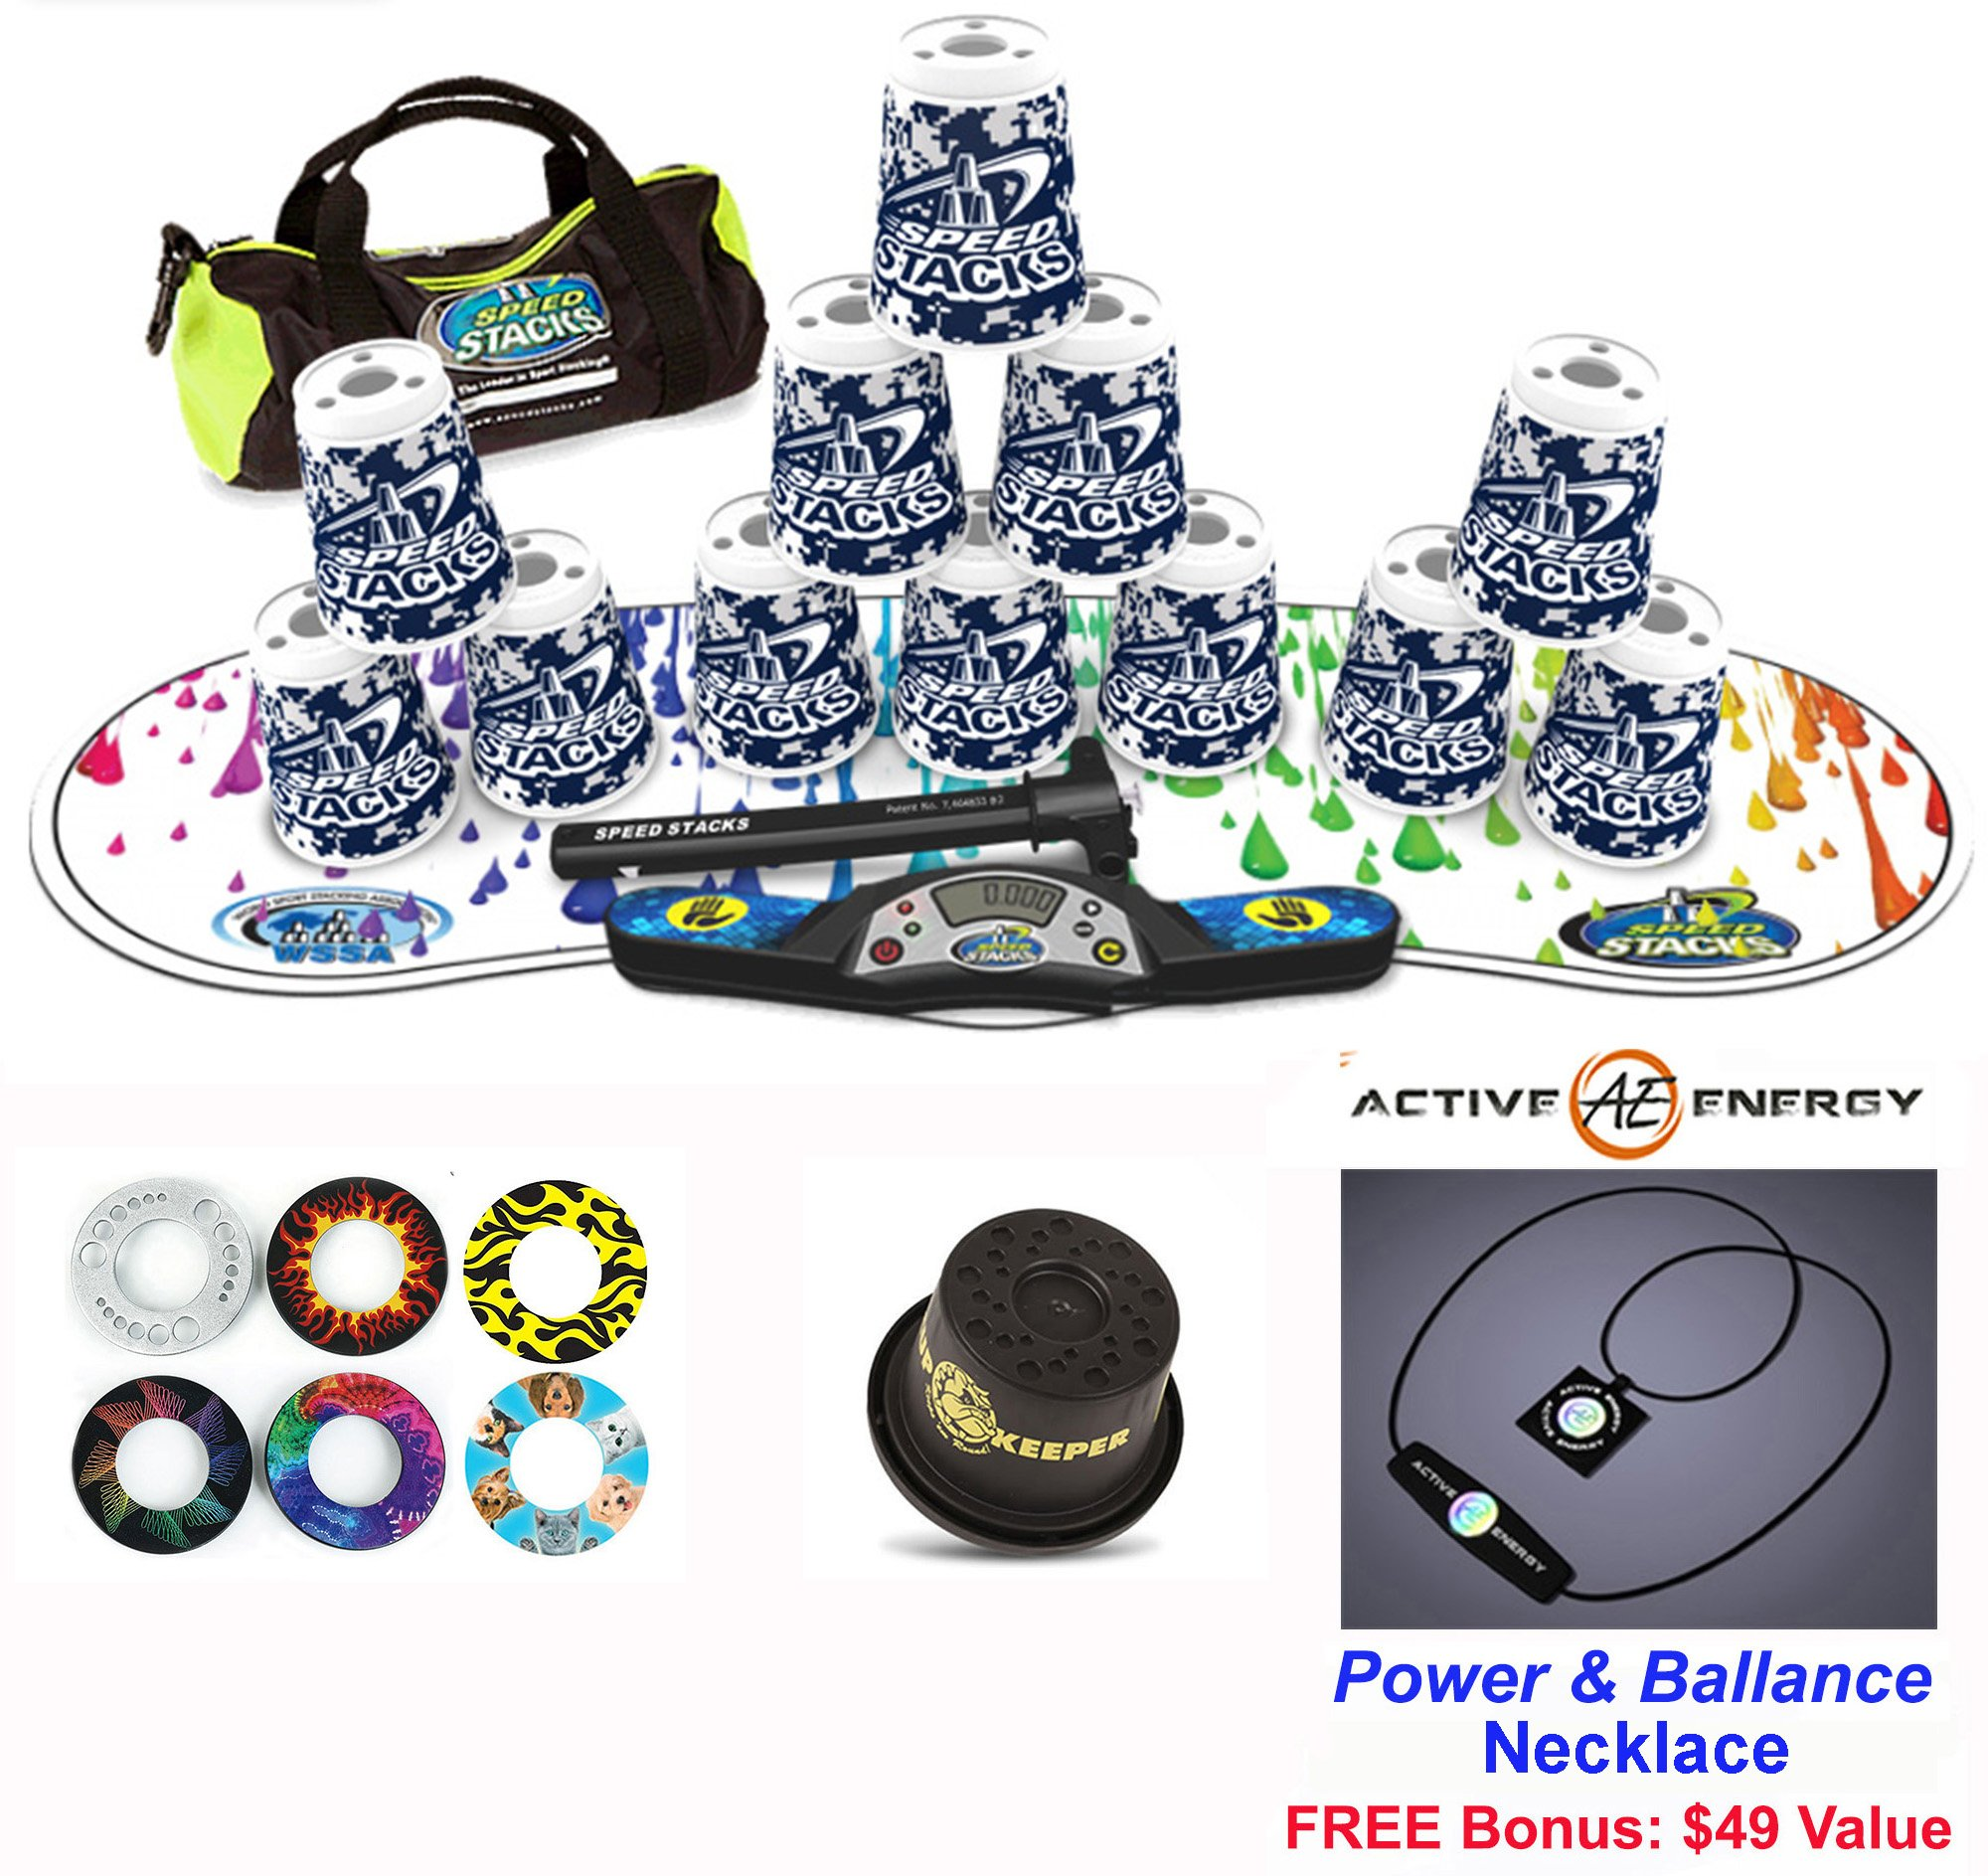 Speed Stacks Combo Set ''The Works'': 12 DIGITAL CAMO 4'' Cups, RAINBOW DROP Gen 3 Mat, G4 Pro Timer, Cup Keeper, Stem, Gear Bag + Active Energy Necklace by Speed Stacks